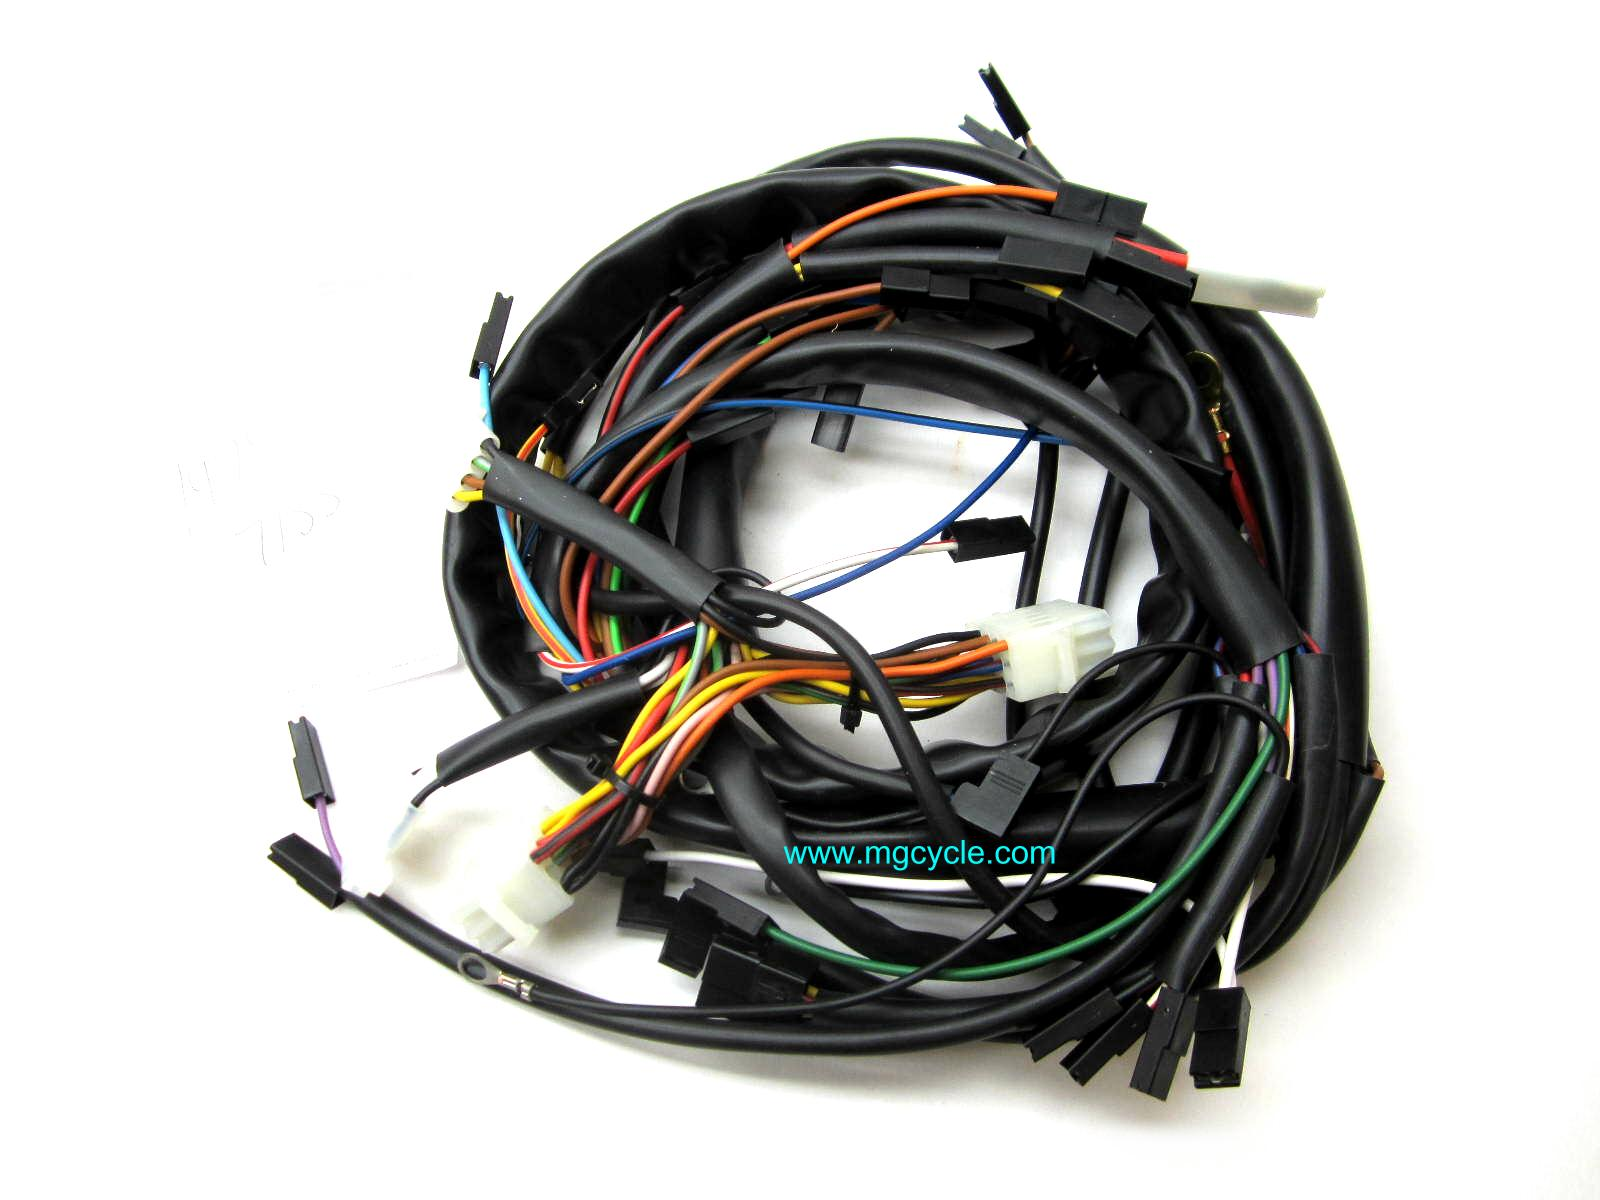 main wire harness CX LM3 1000SP Cal2 LM2 T3Cal